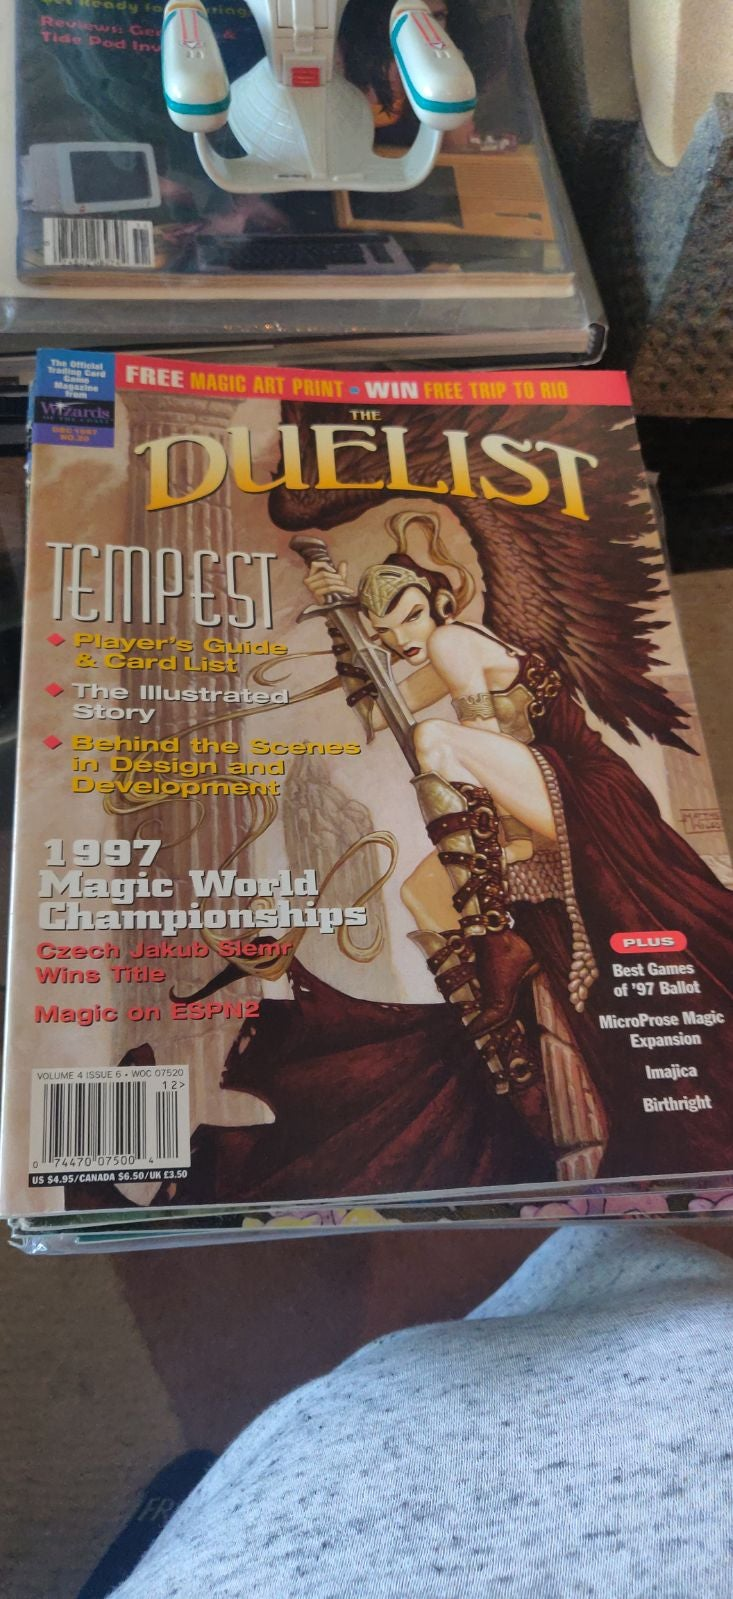 Duelist volume 4 issue 6